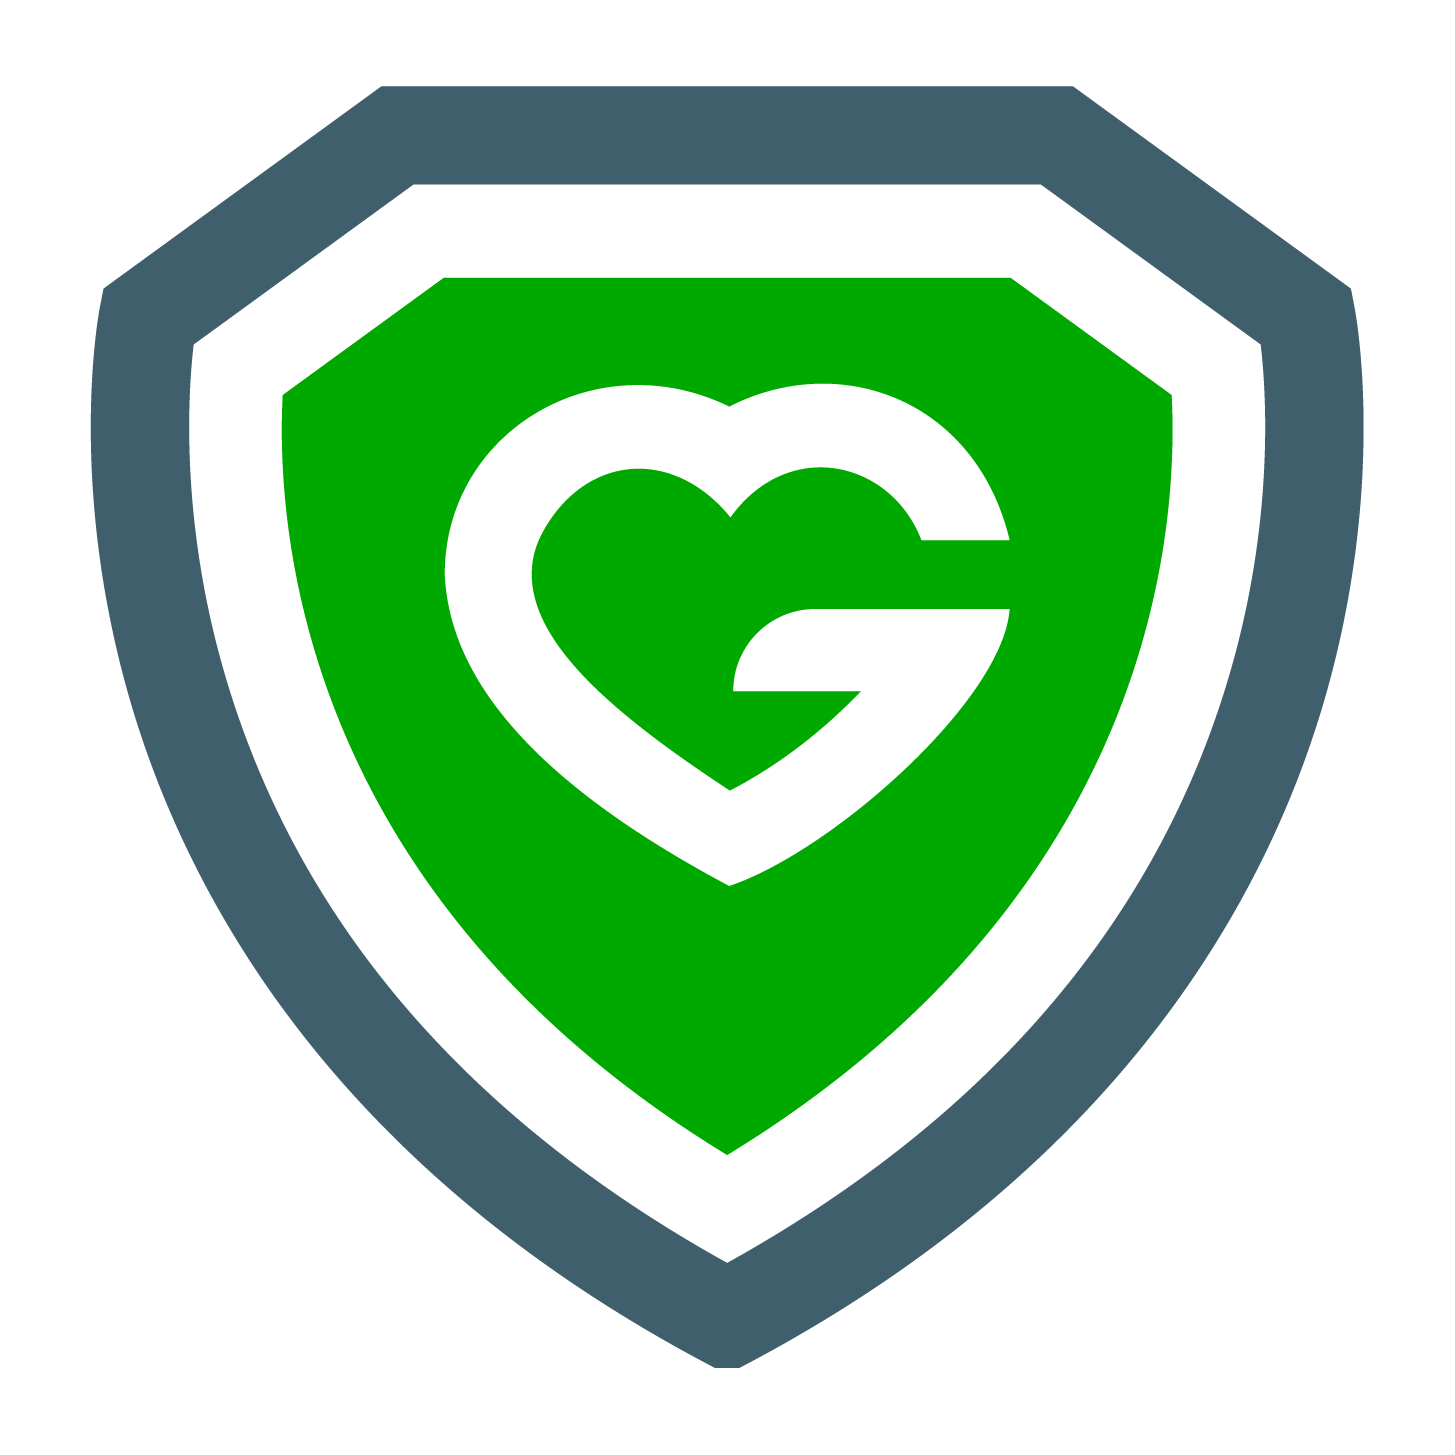 Greenhearts Security